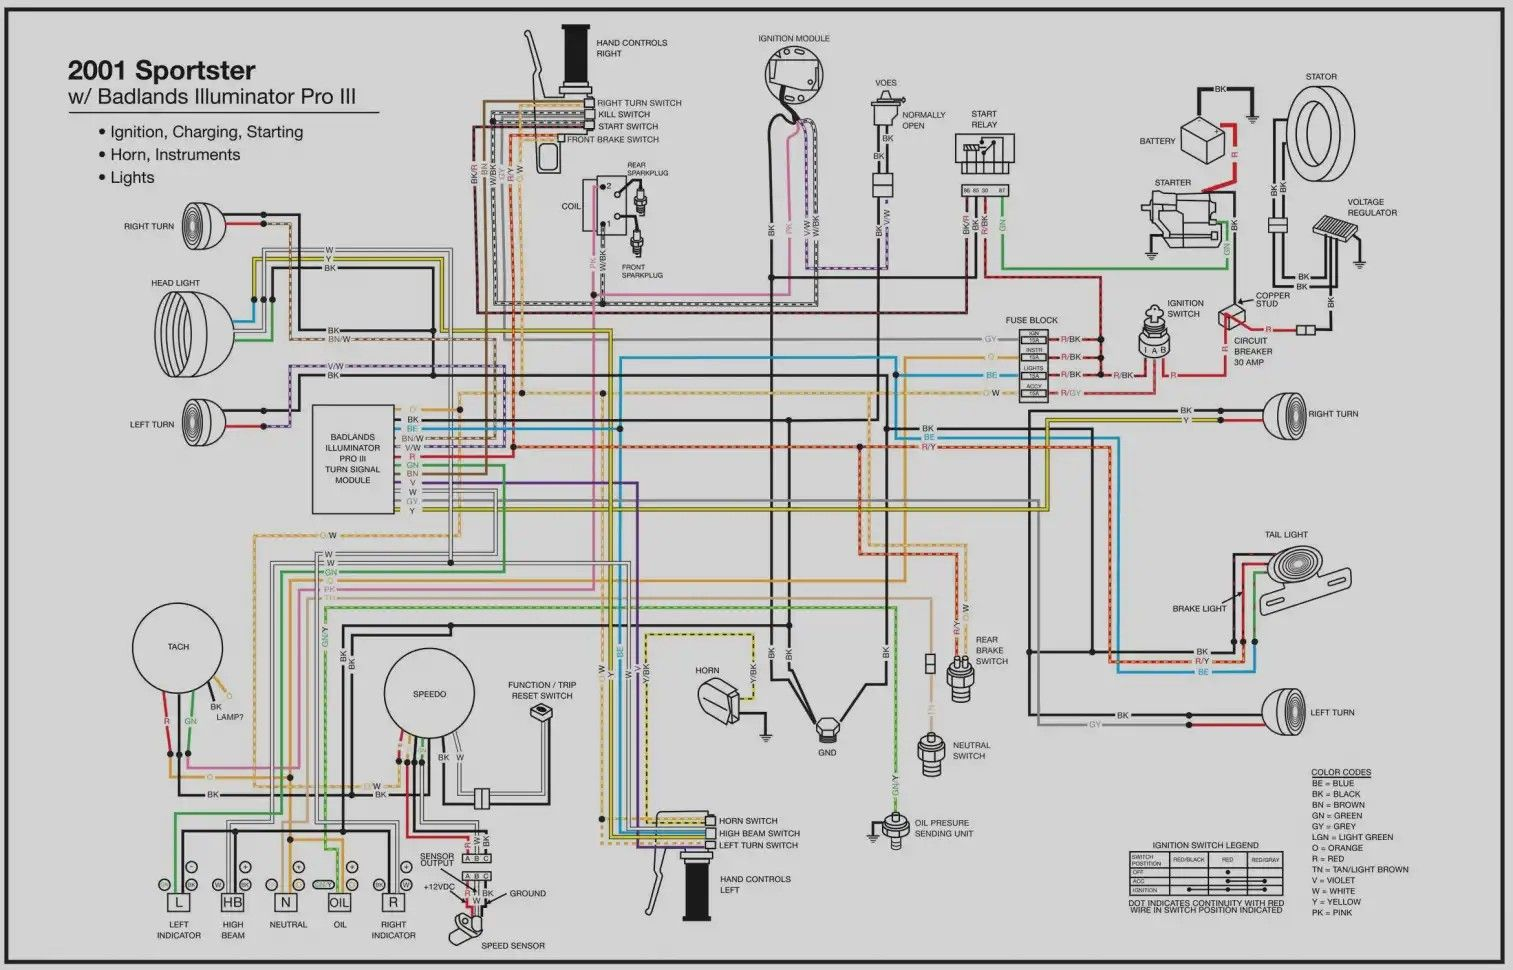 wiring diagram pin by kevin mckendree on dope buell motorcycles diagram  [ 1513 x 970 Pixel ]